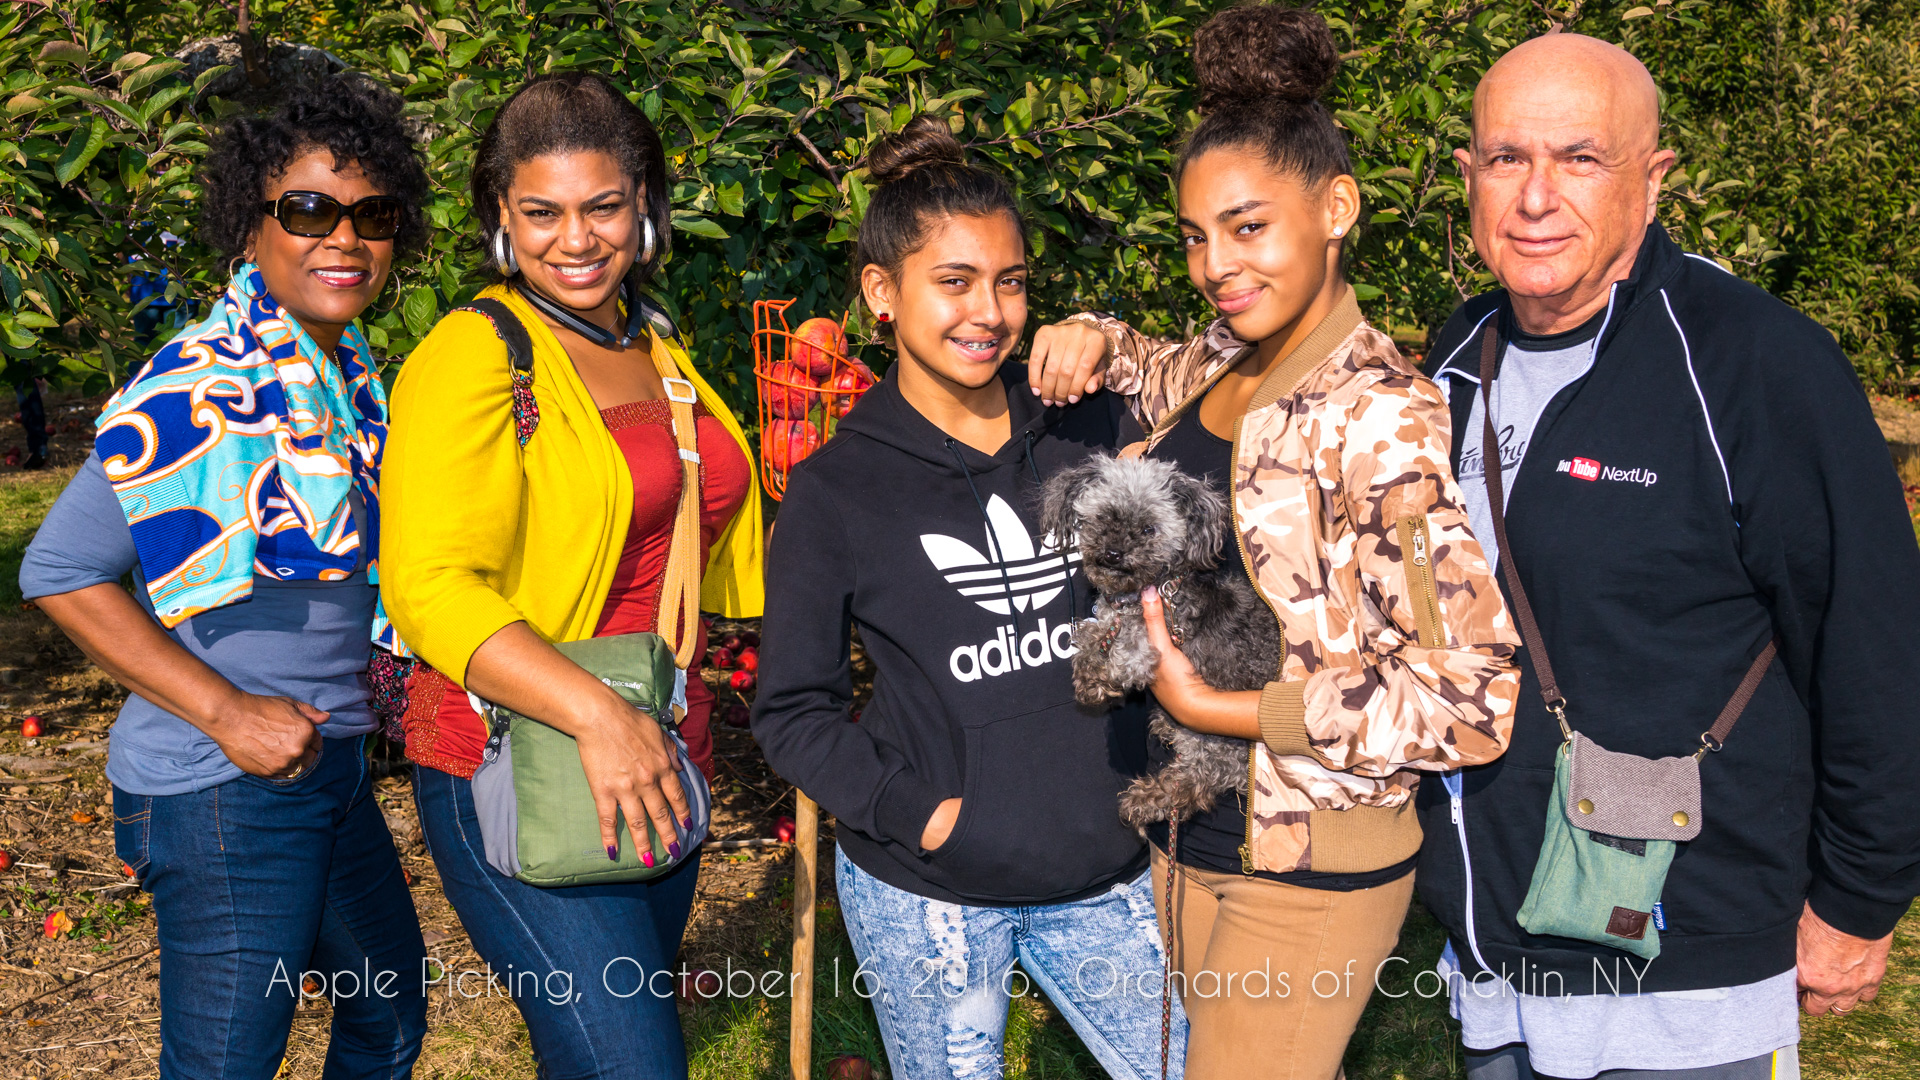 Apple Picking, September 16, 2016, Orchards of Concklin, NY